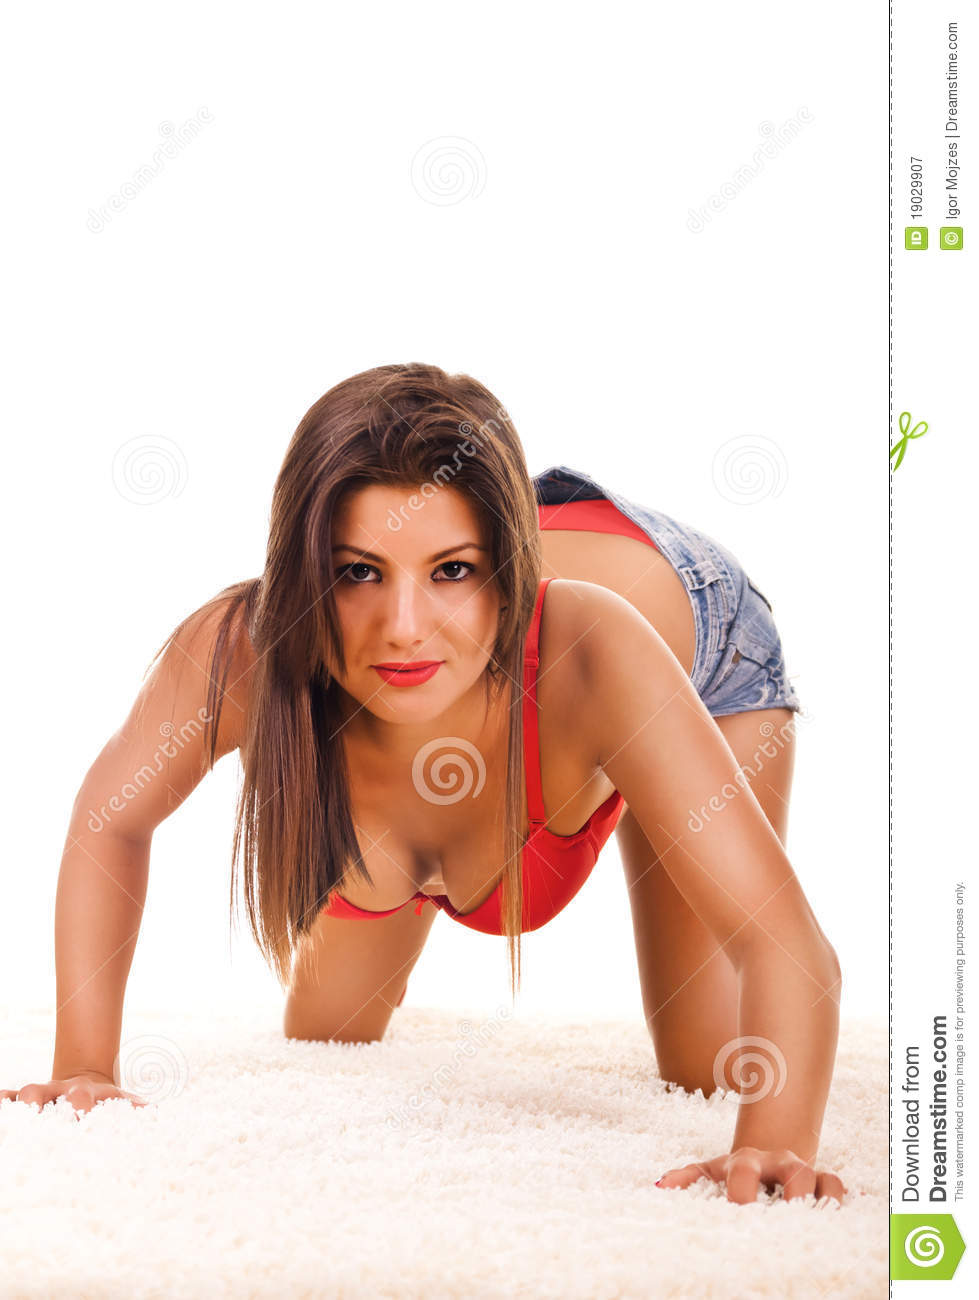 Women In Seductive Position Royalty Free Stock Photography